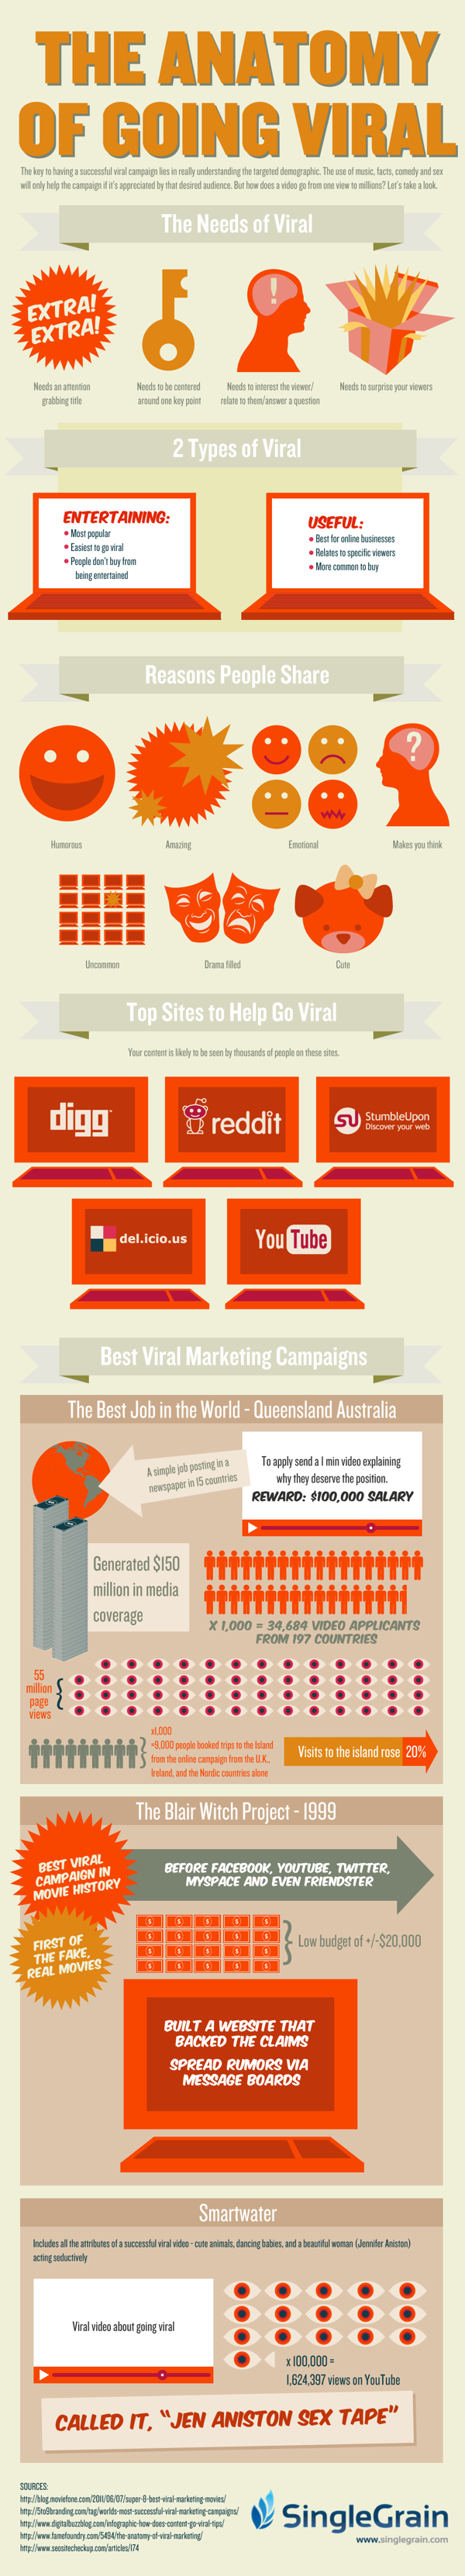 The Anatomy of Going Viral